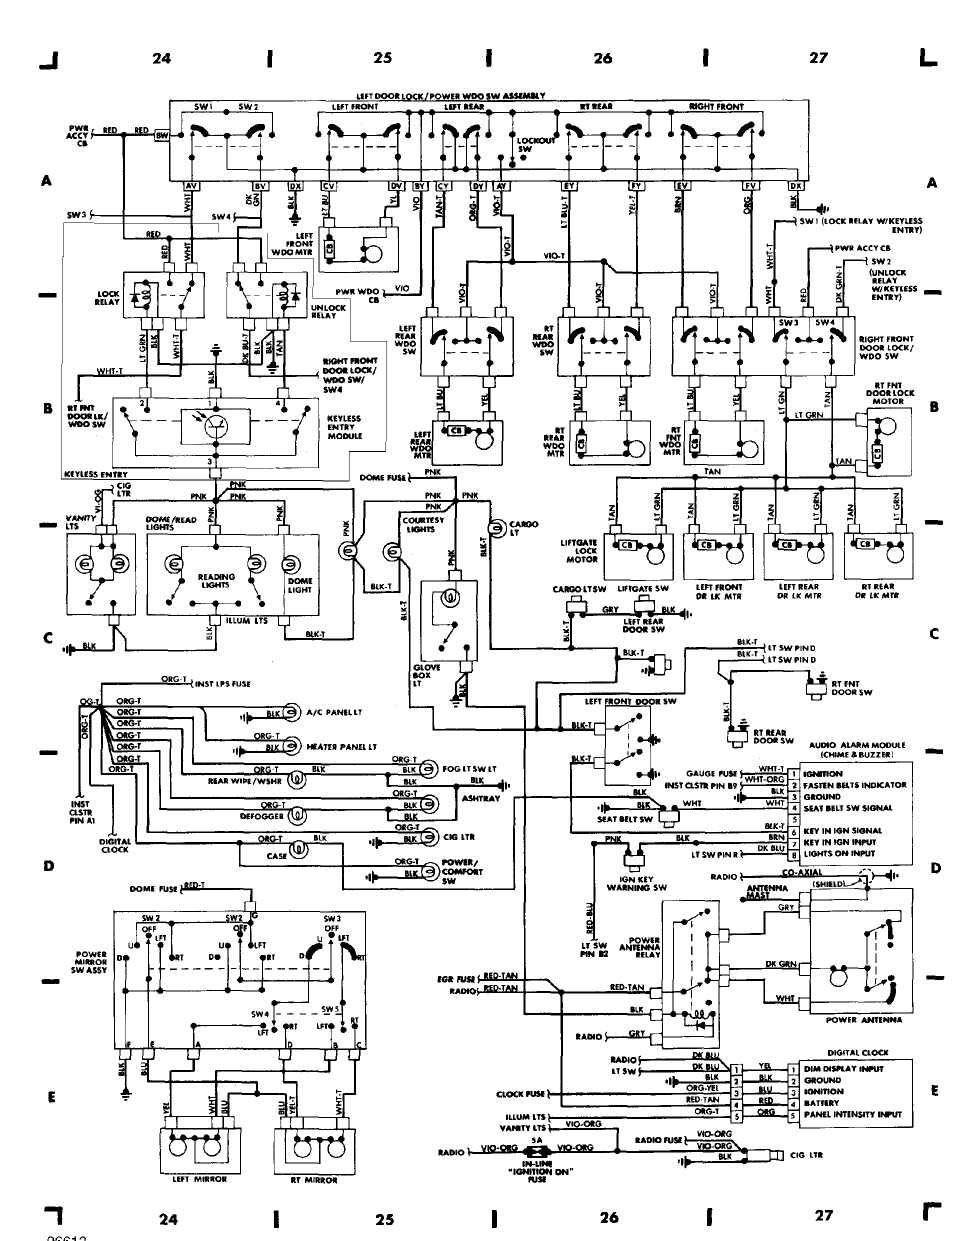 wiring_diagrams_html_61f5e0ad 2000 jeep xj wiring diagram 1998 jeep cherokee wiring diagrams pdf  at readyjetset.co